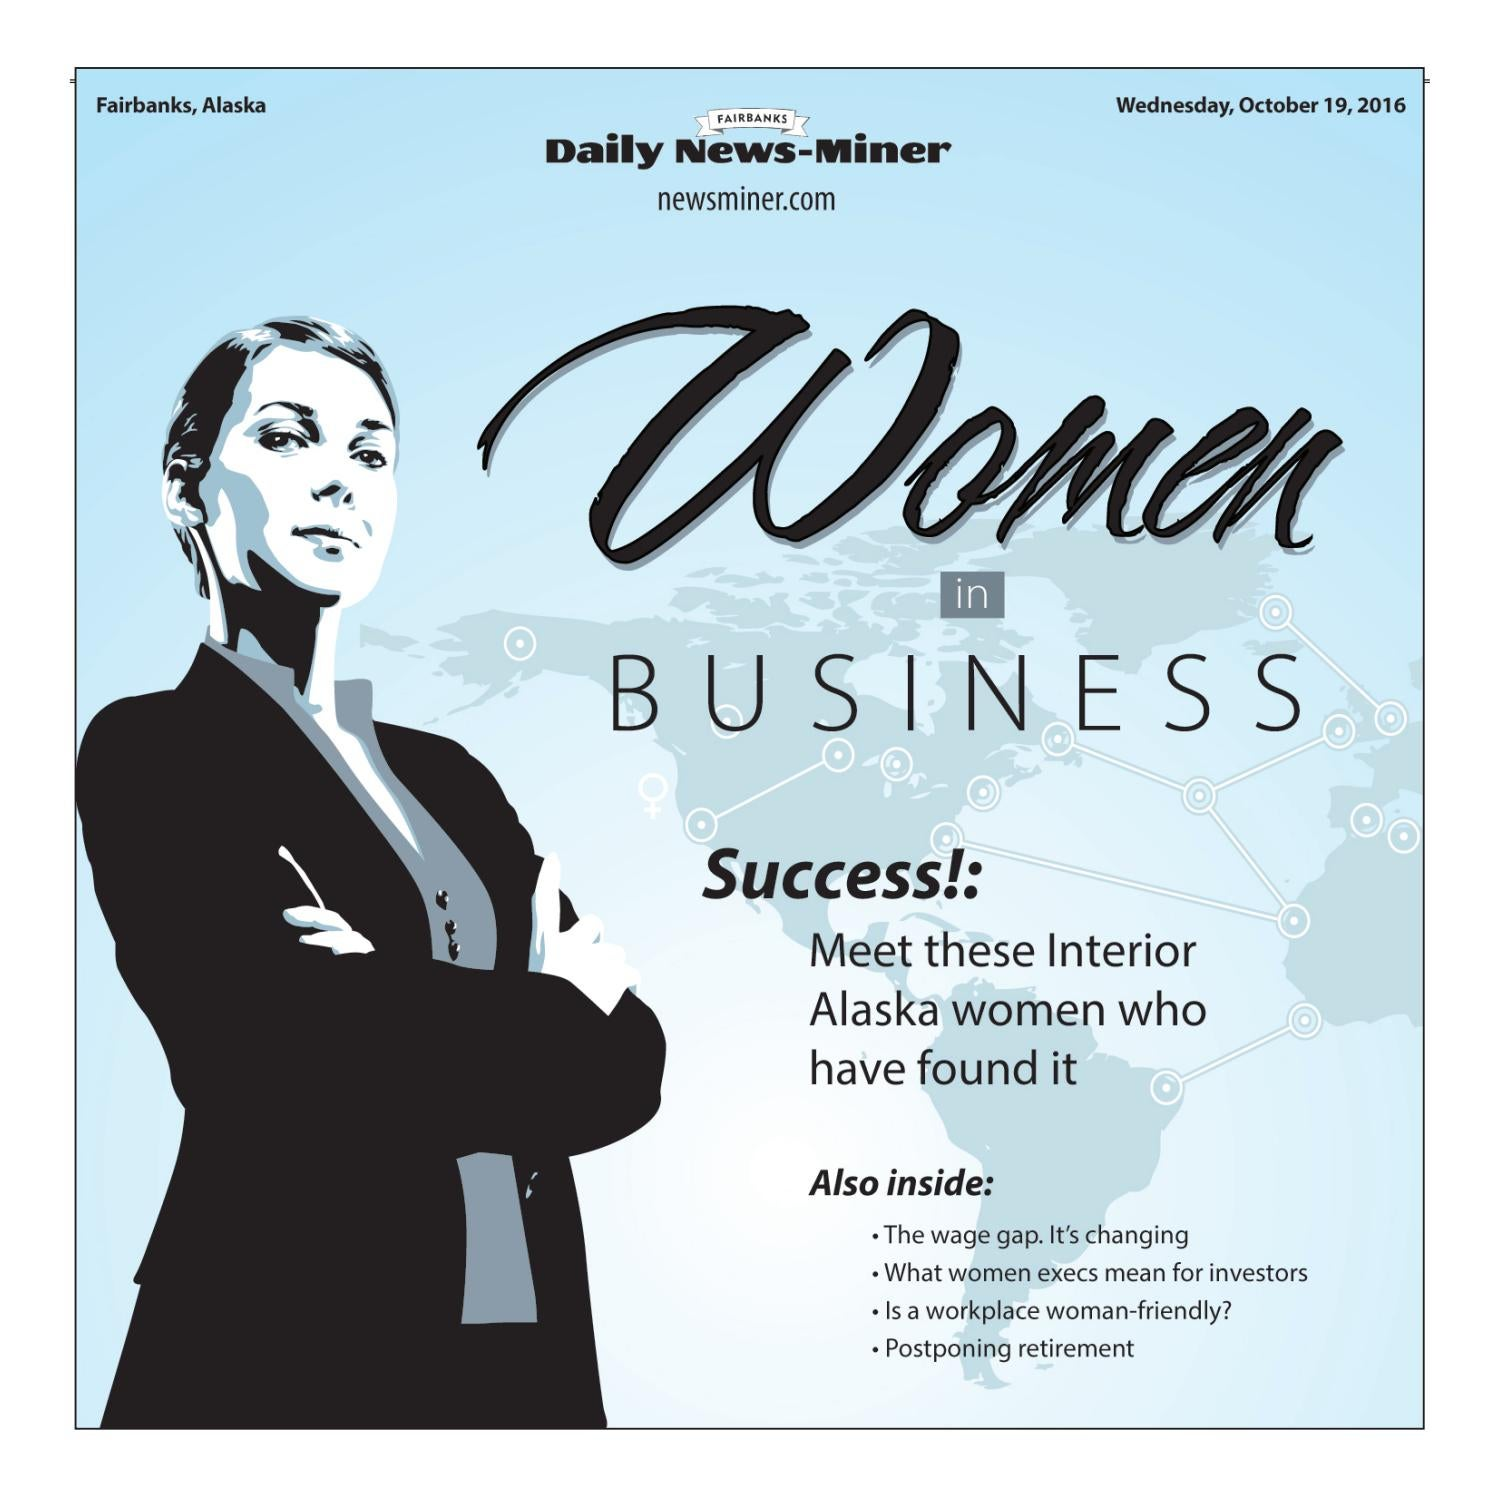 women in business 2016 by fairbanks daily news-miner - issuu